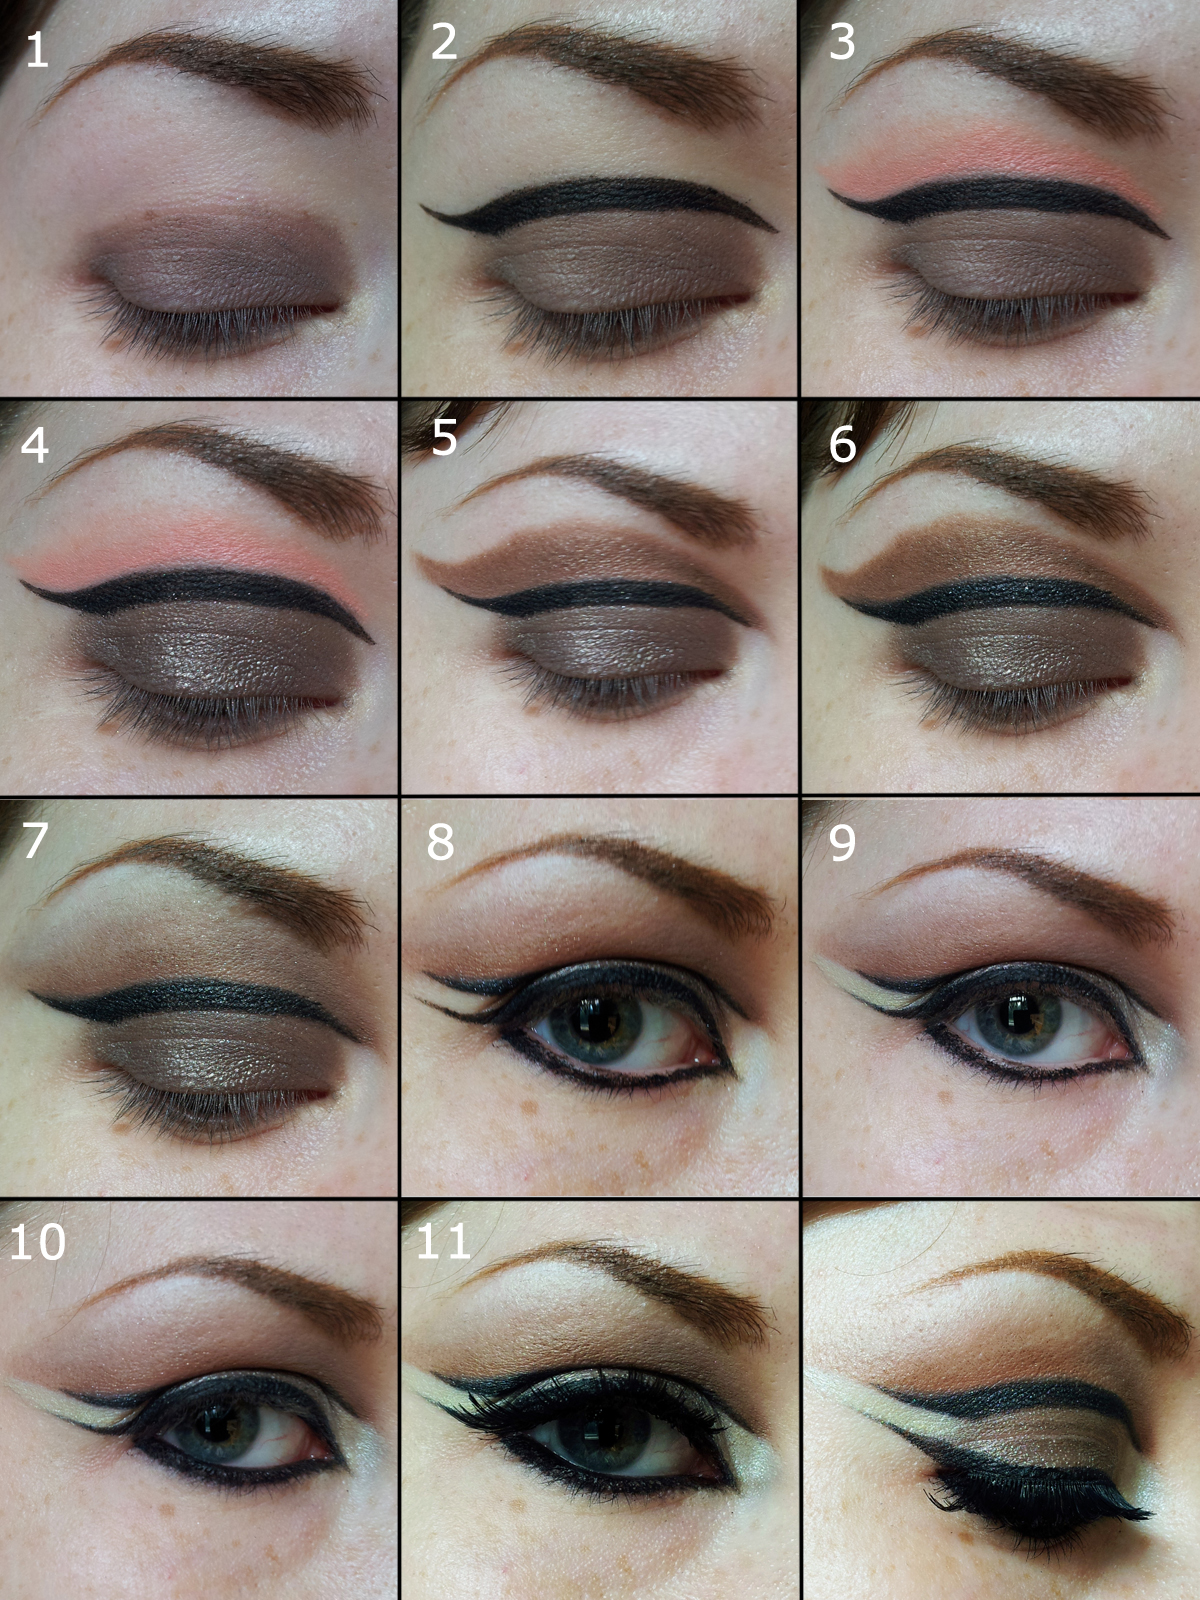 Make it all up illamasqua reflection palette tutorial after priming your lid apply your taupe cream shadow maybelline permanent taupe all over the lid using a flat synthetic shader brush baditri Image collections